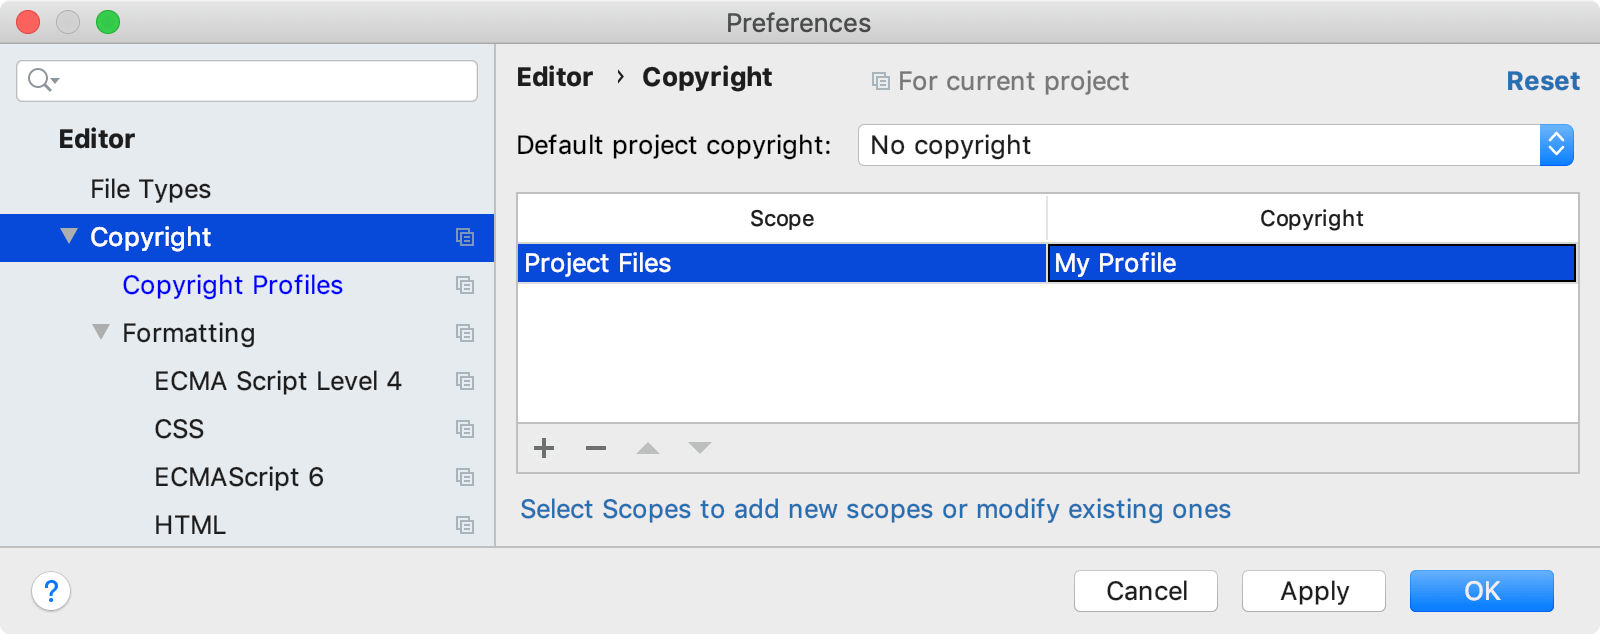 Associating a profile with a scope